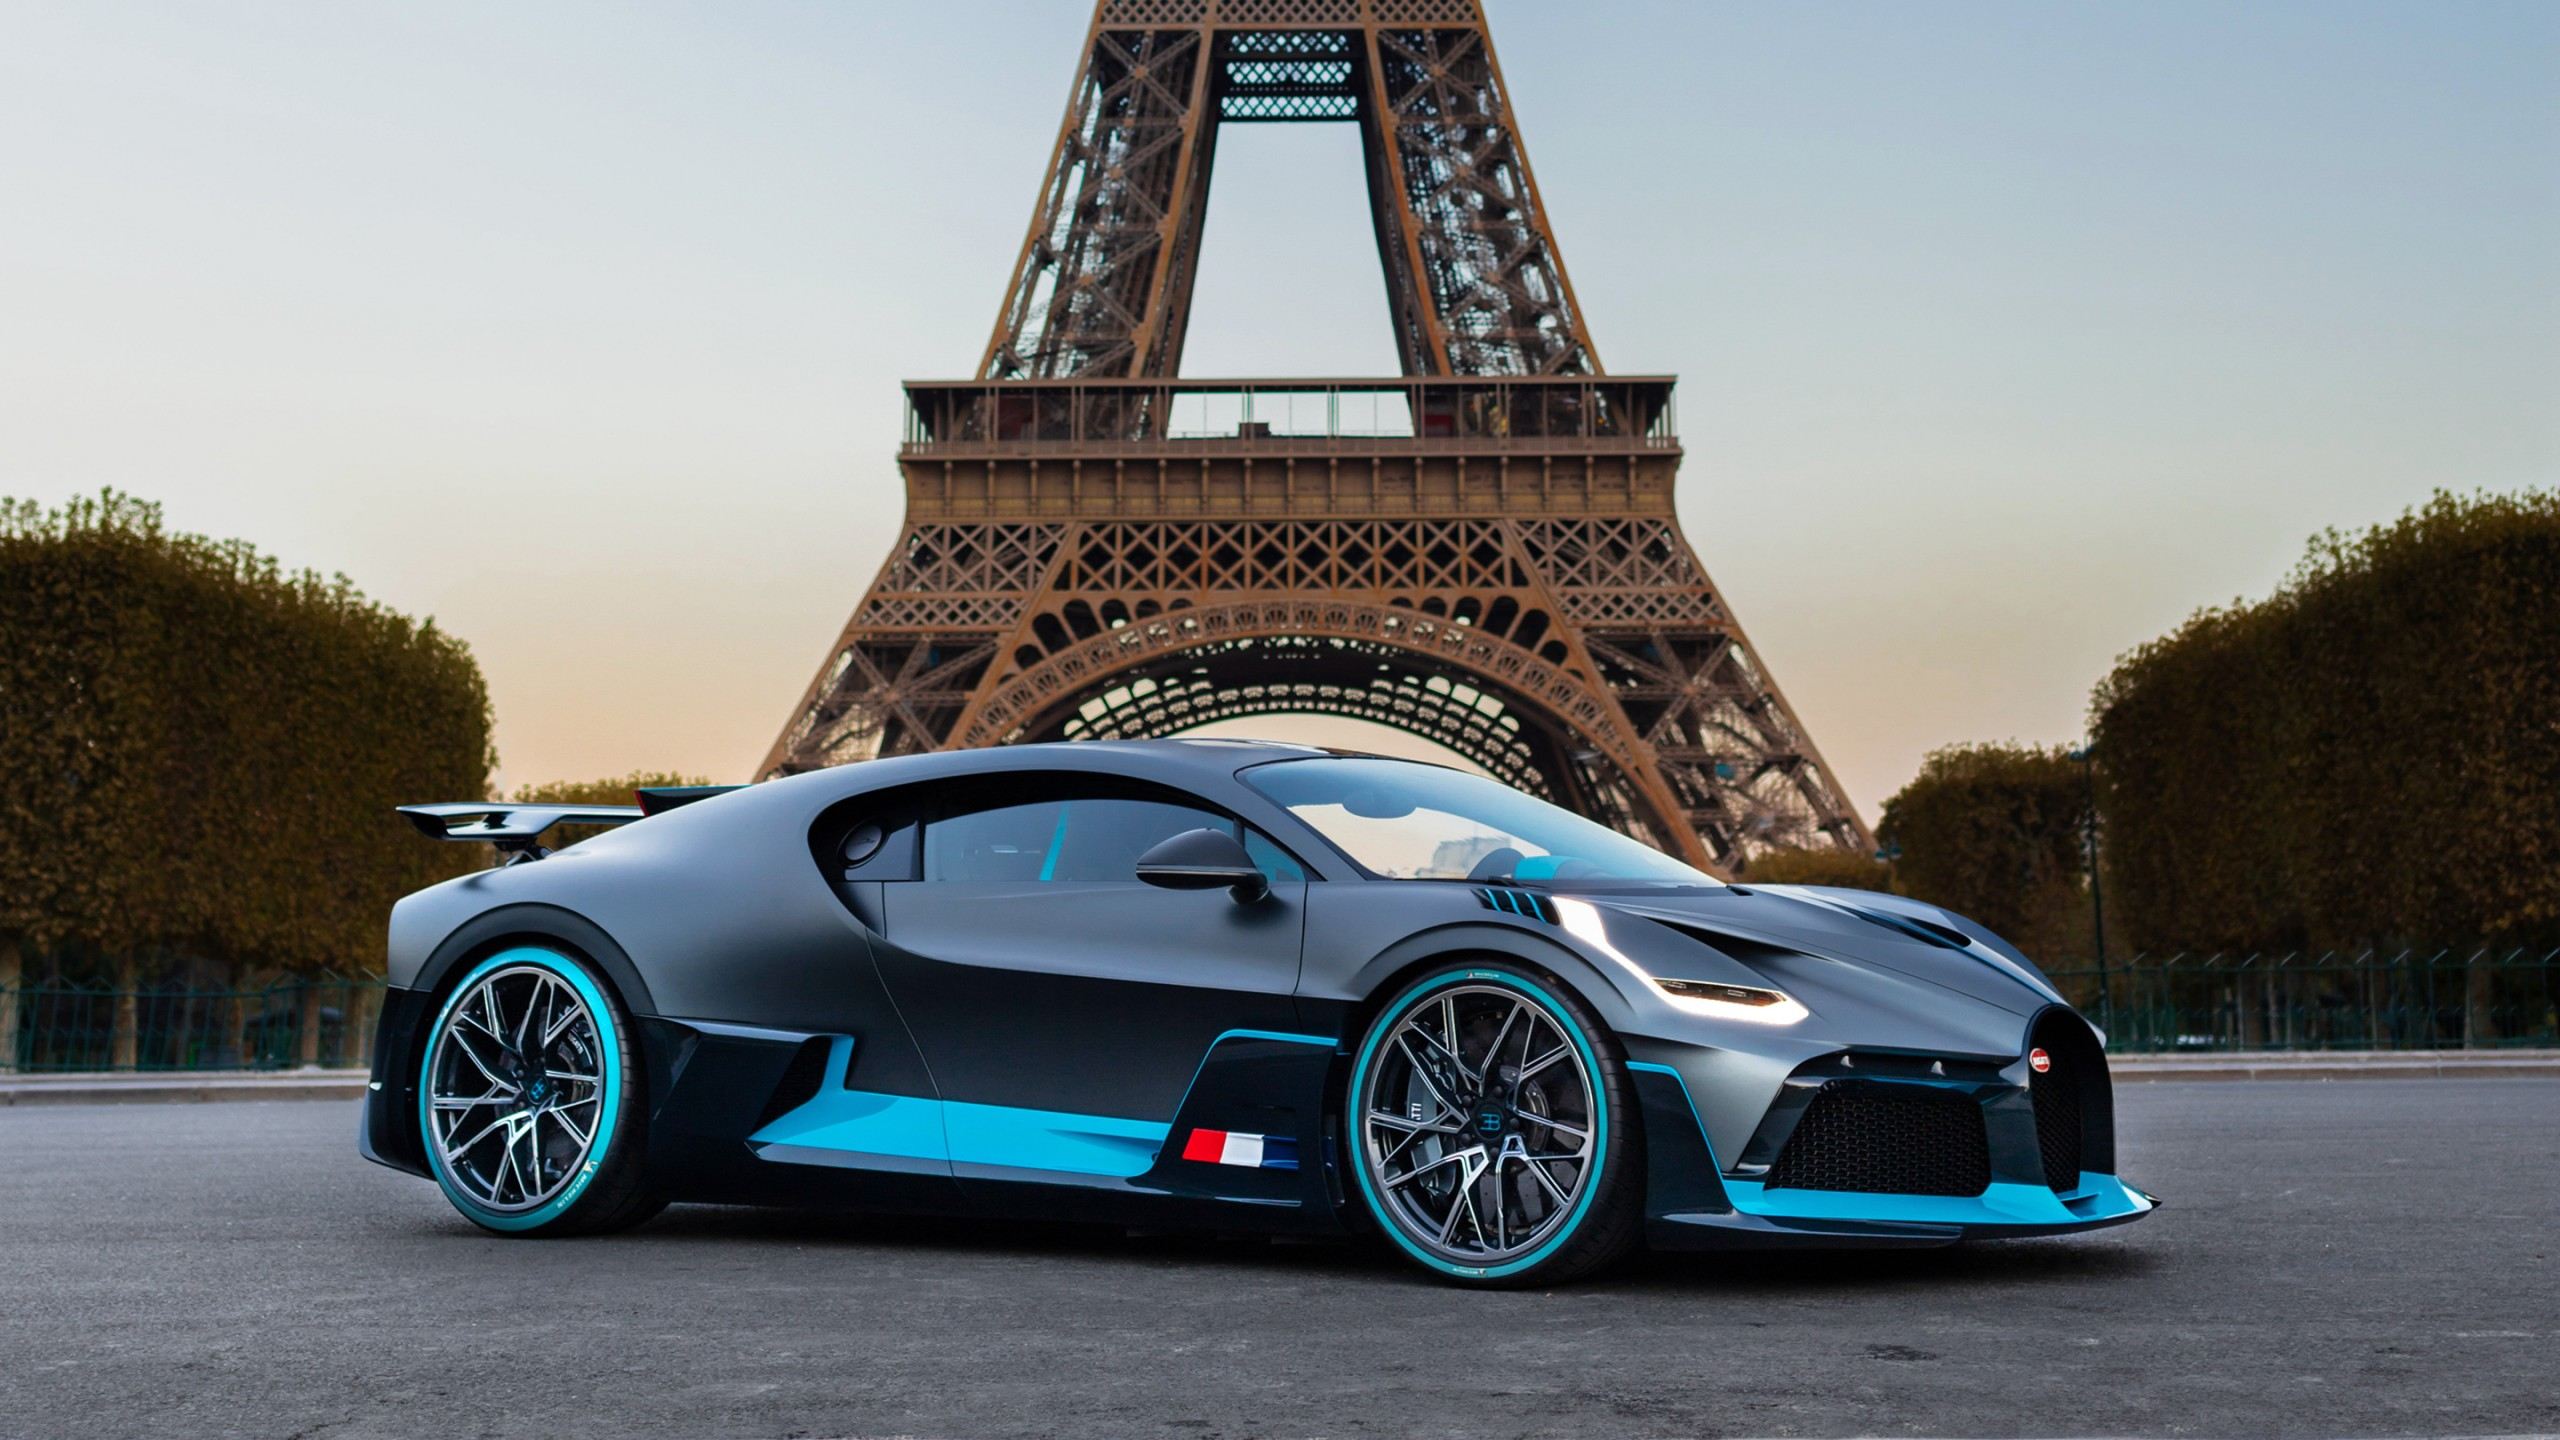 4k Wallpaper Car Lamborghini Bugatti Divo In Paris Wallpaper Hd Car Wallpapers Id